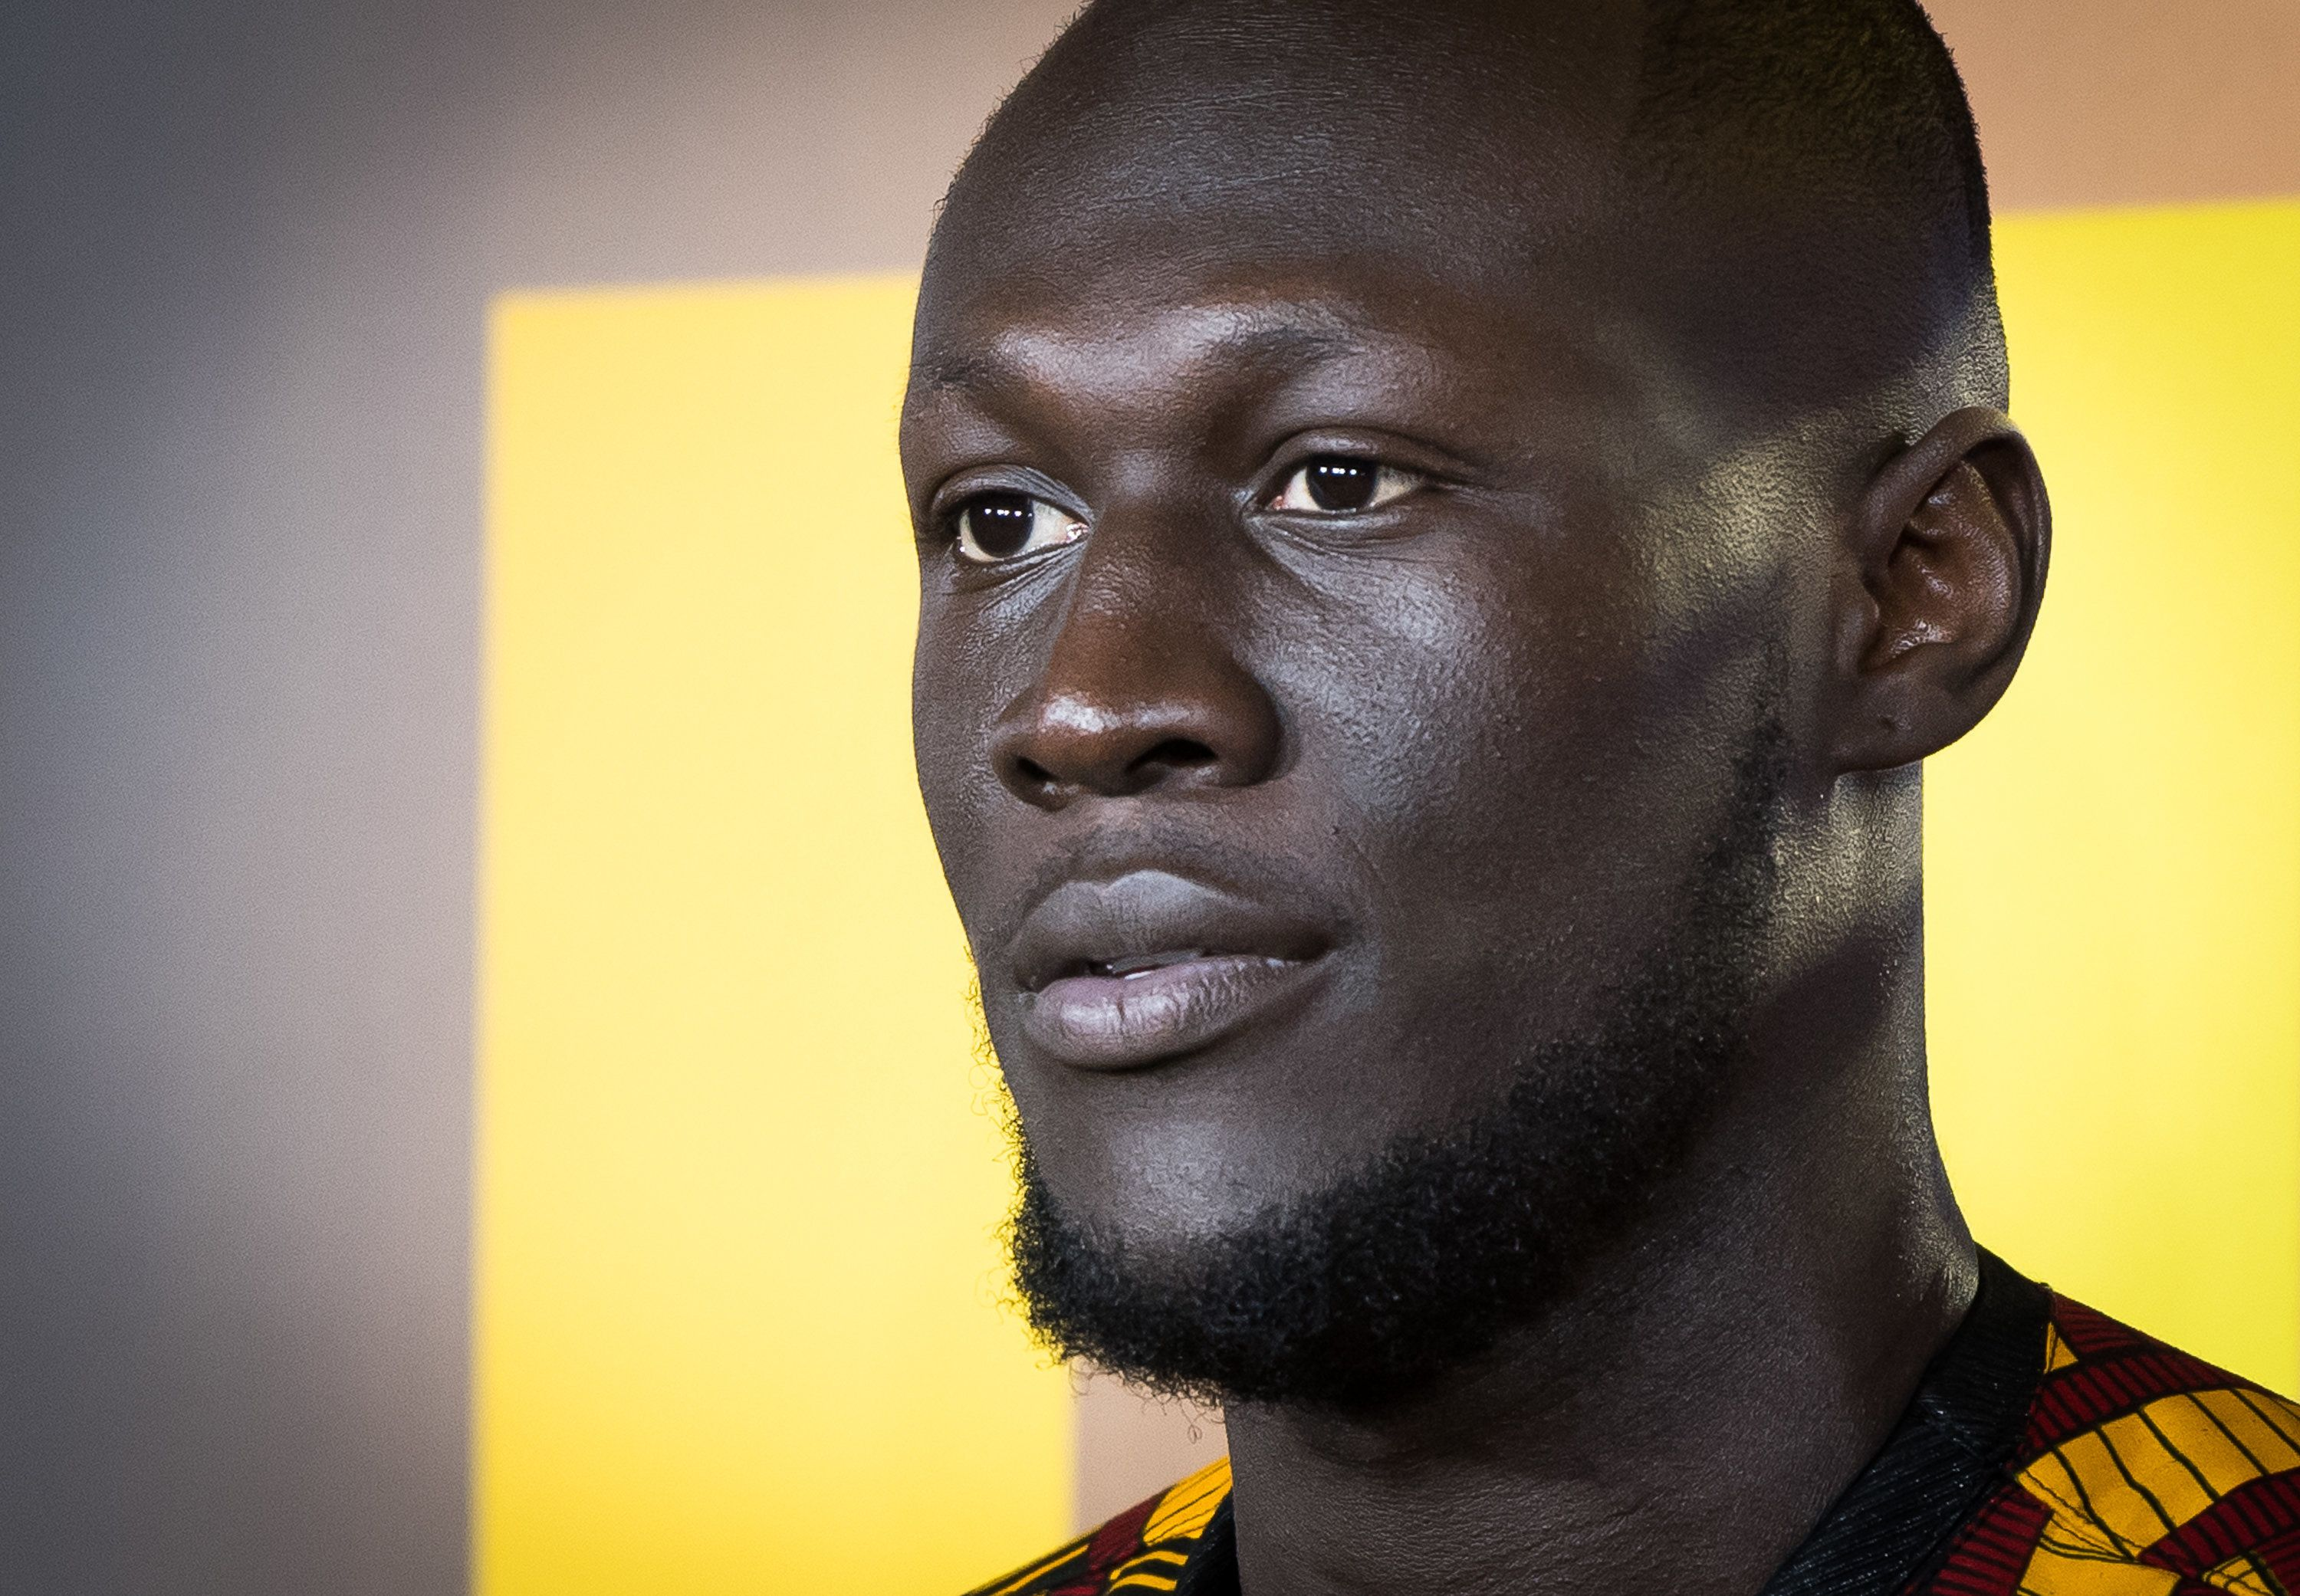 Theresa May hits back at Stormzy over Grenfell Tower rap at Brits